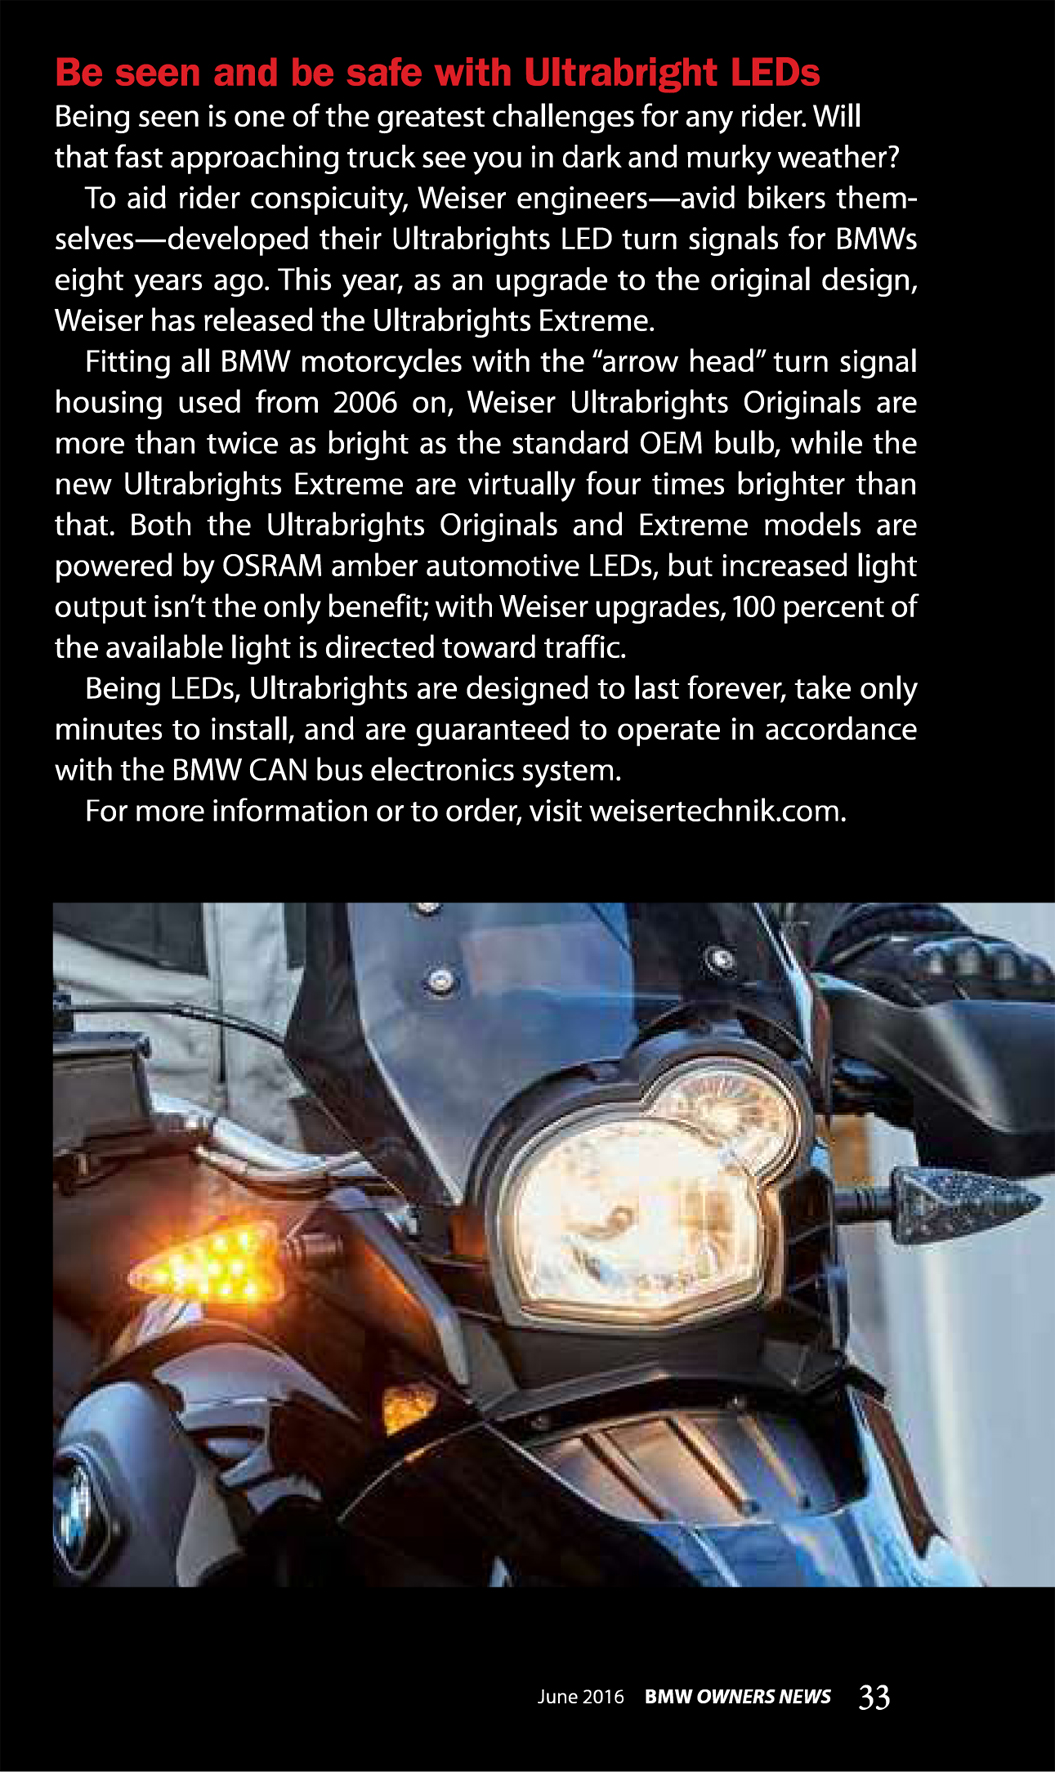 BMW Owners News